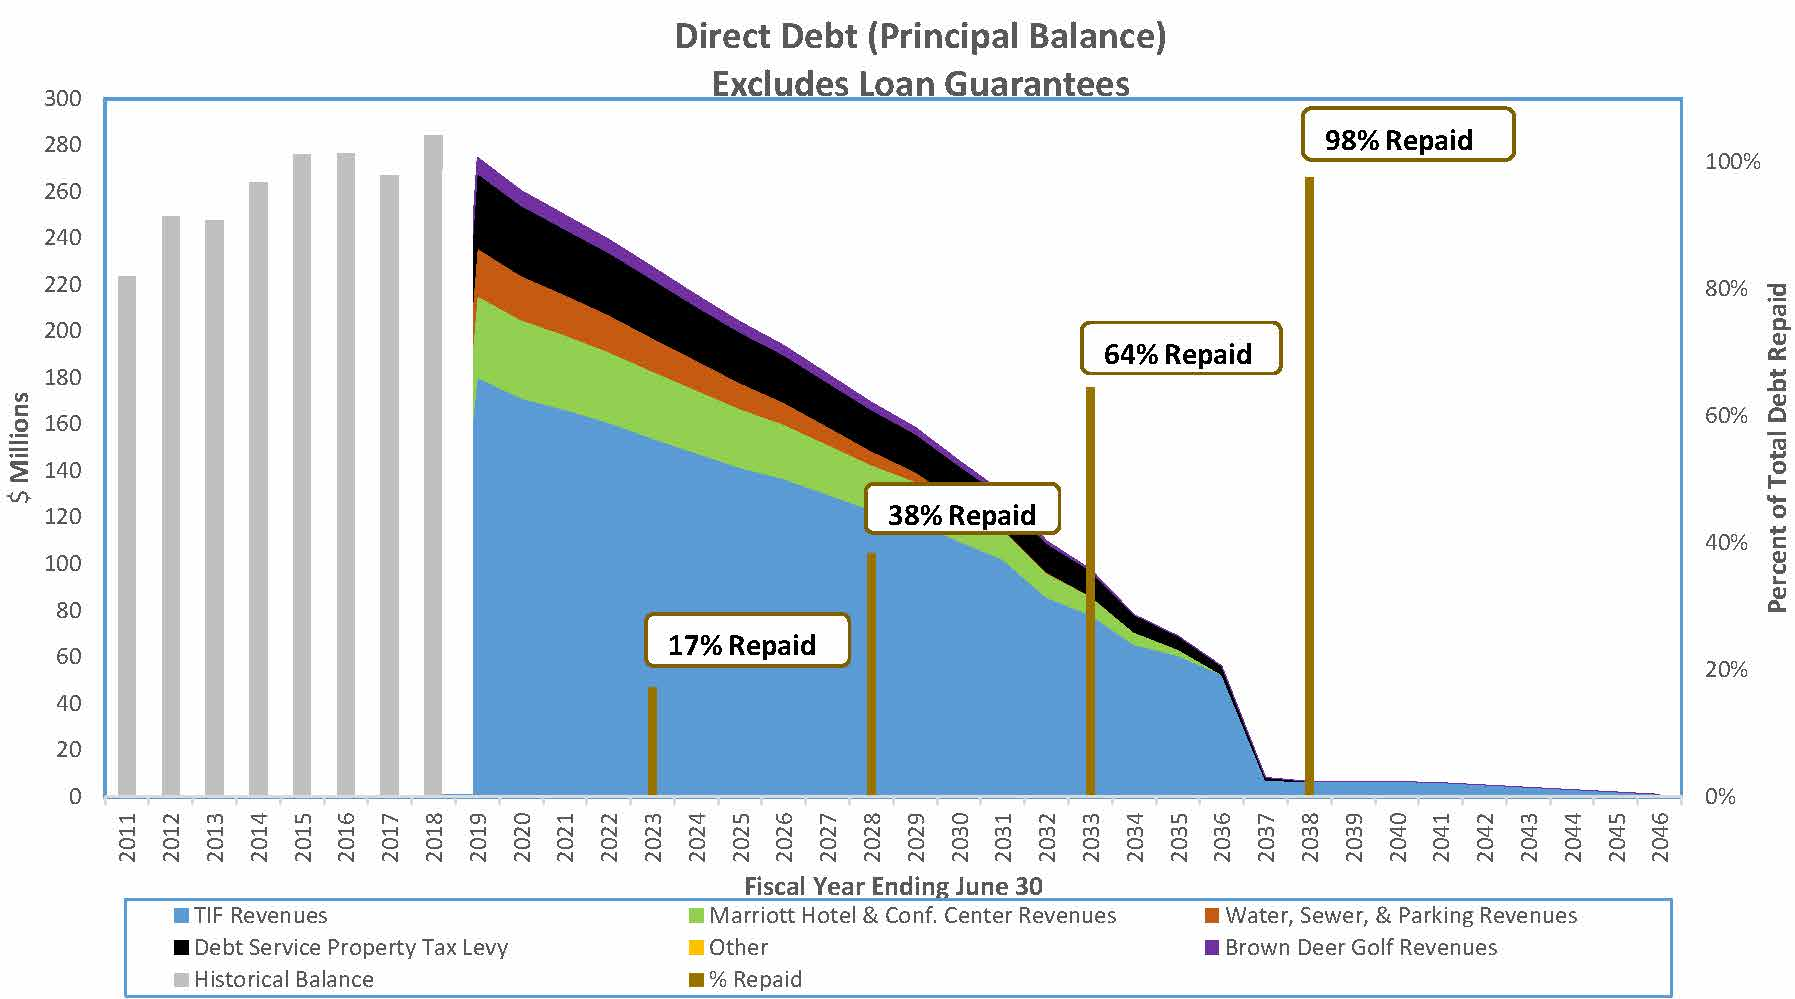 Coralville Direct Debt 98% repaid in 2038